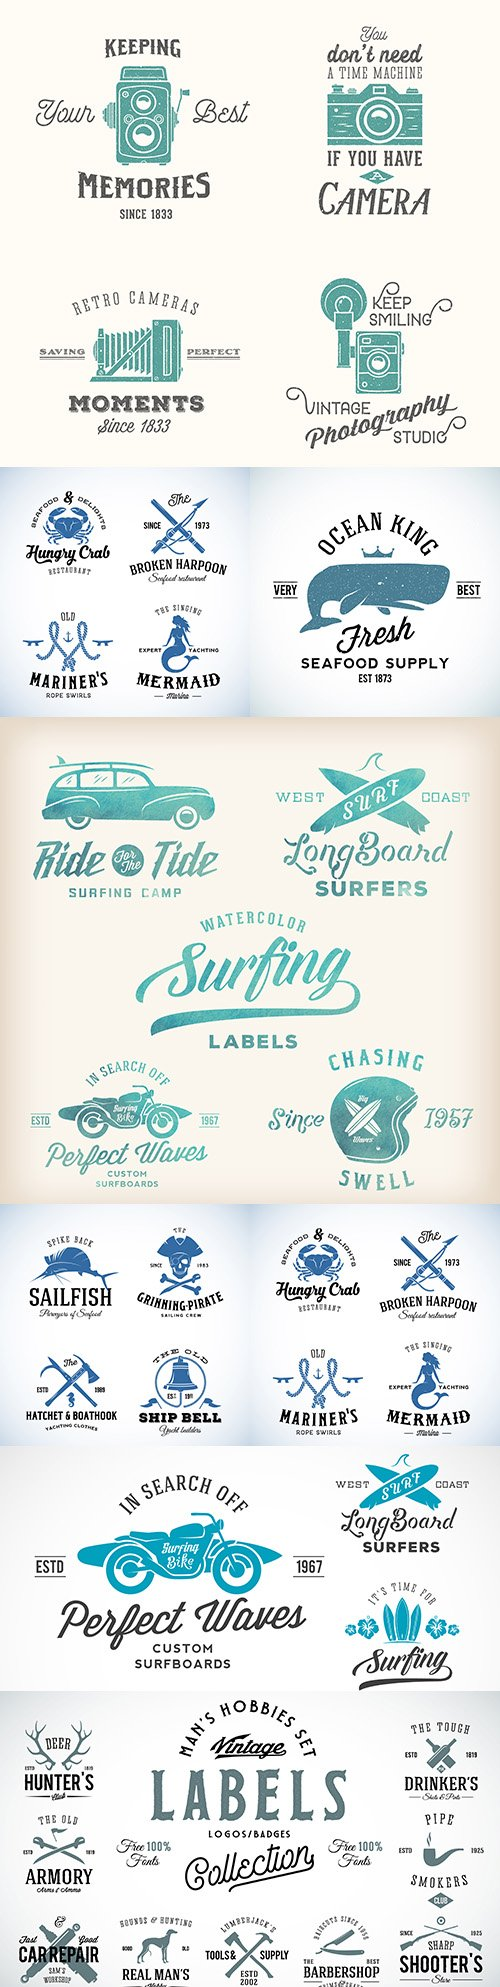 Vintage logo and template with retro typography men 's hobbies